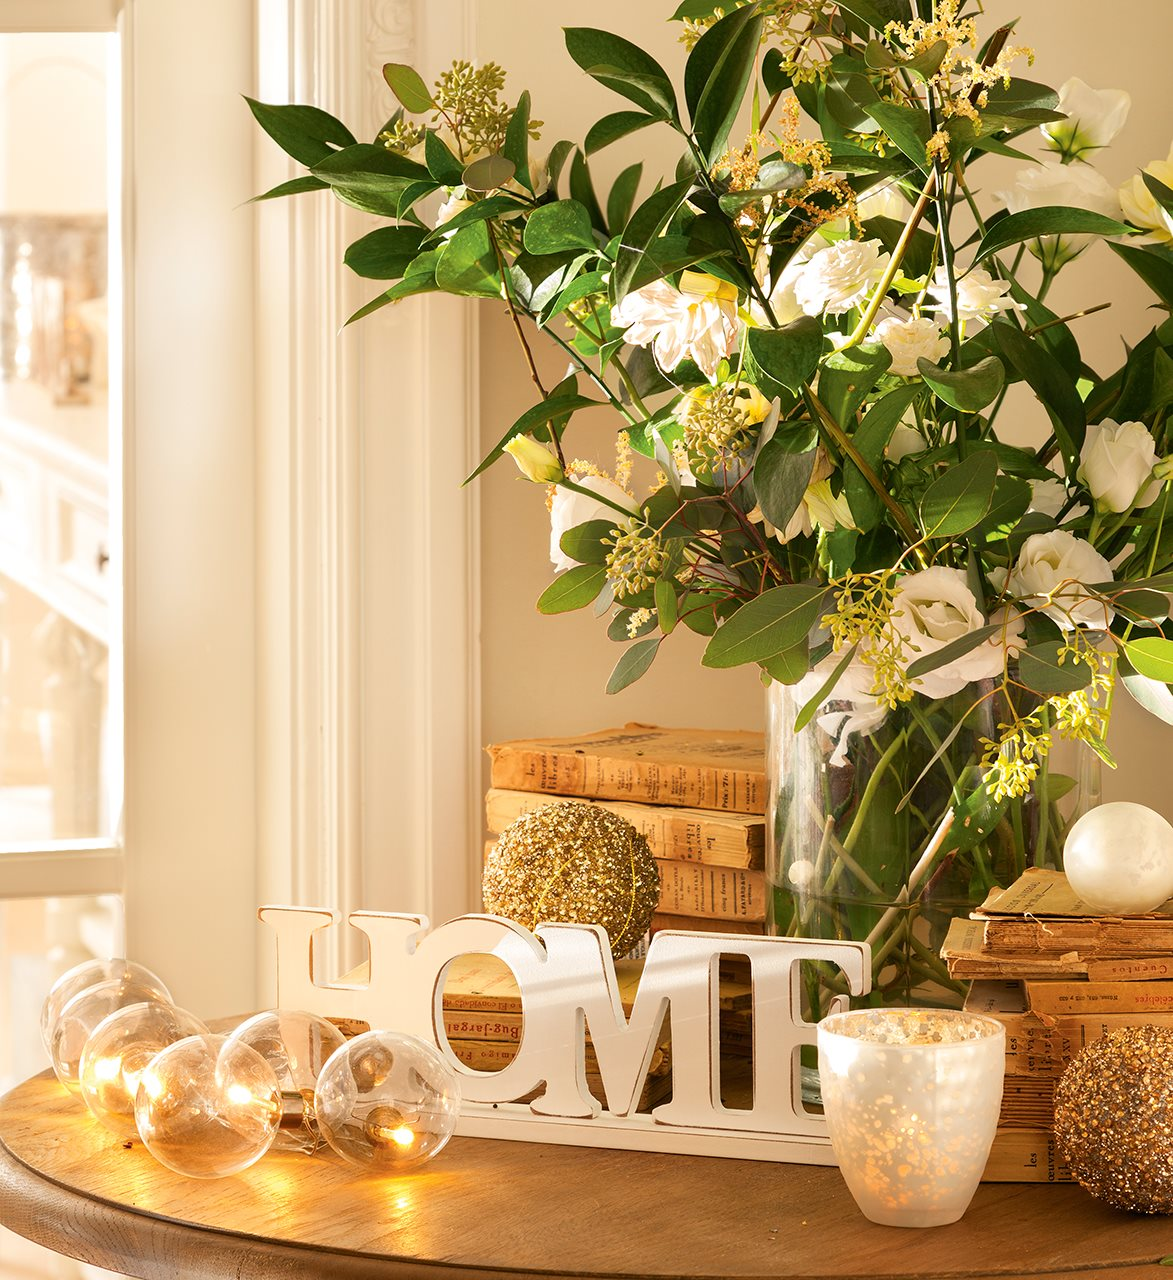 15 ideas para decorar la casa esta navidad for Ver como decorar una casa